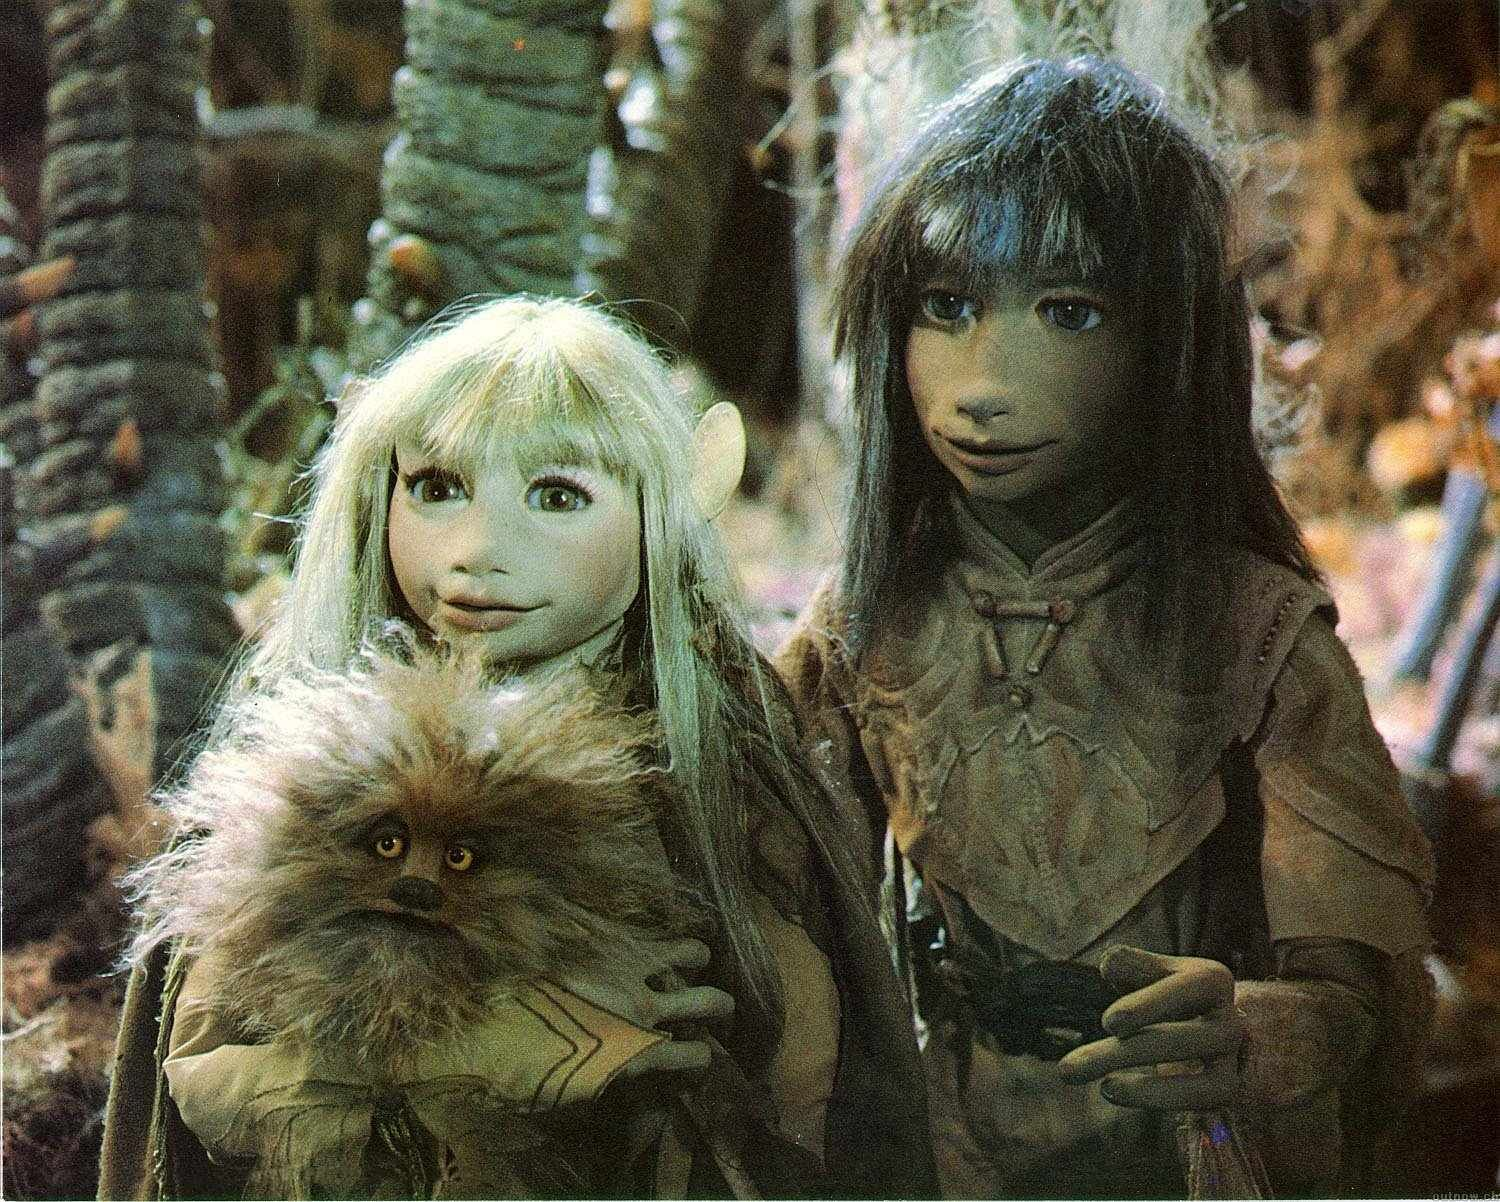 Cristal oscuro (The Dark Crystal) (1982) - Dirigida por Jim Henson y